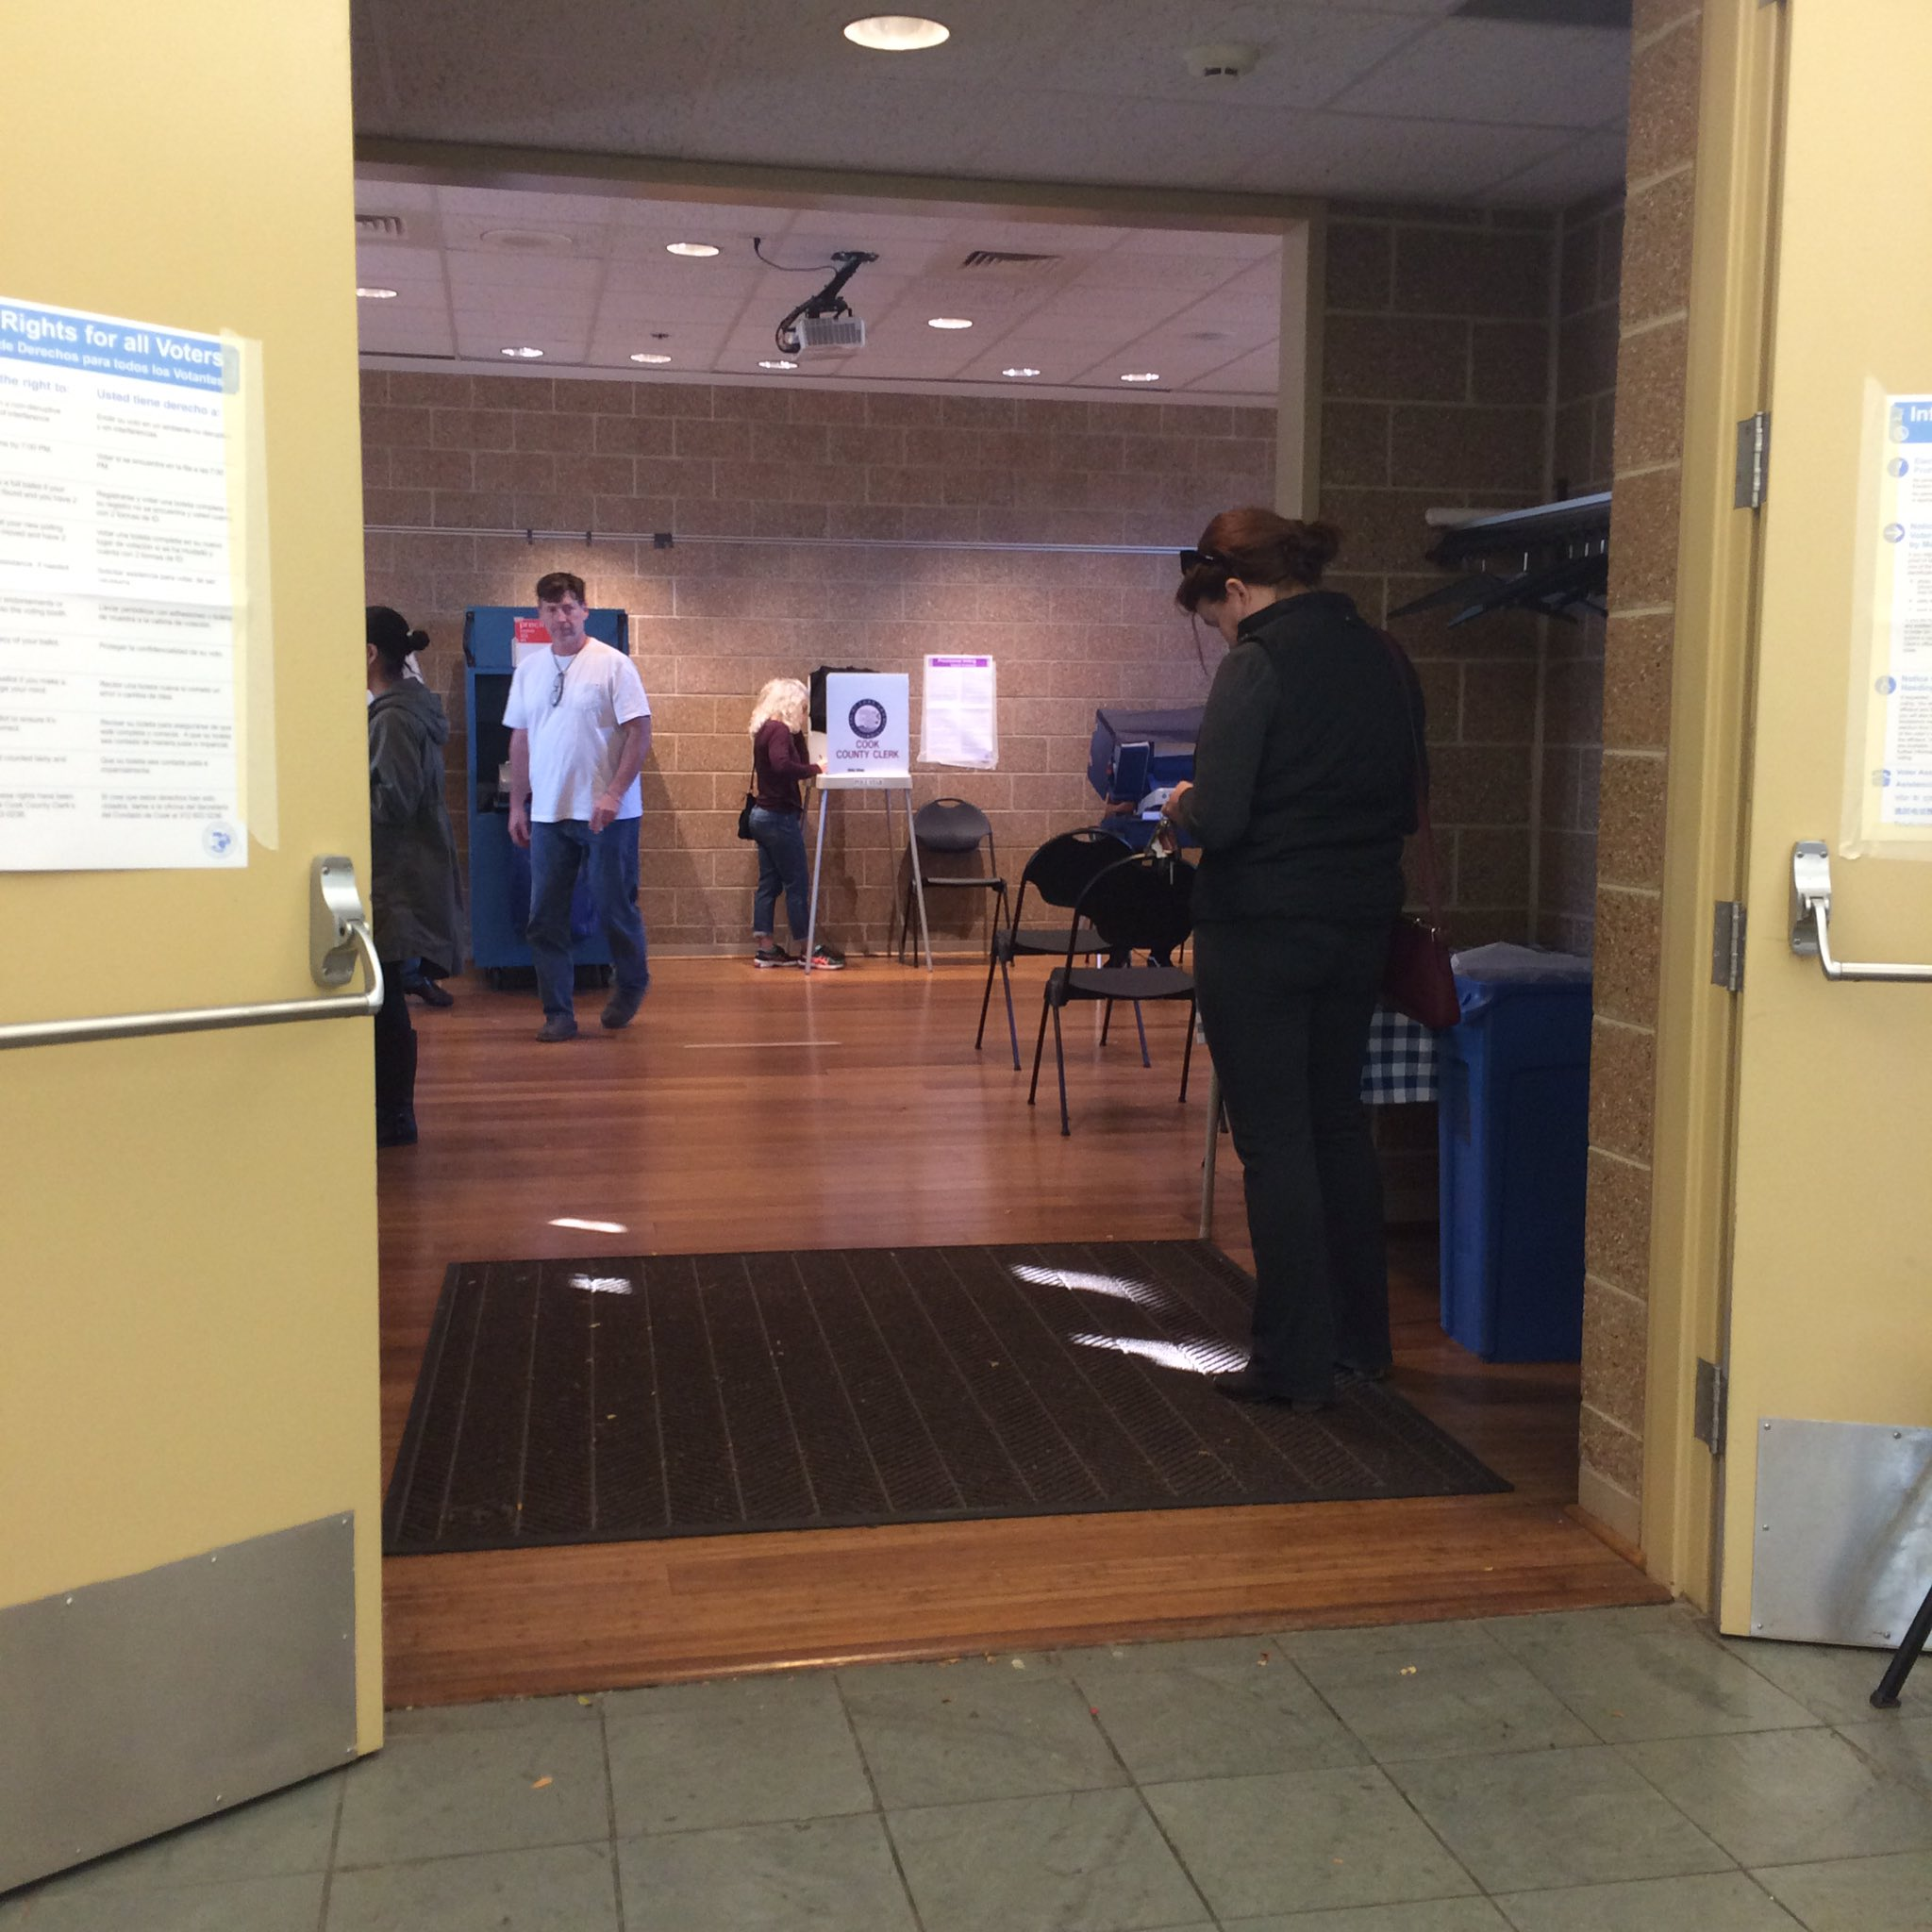 There was no line at the Oak Park Conservatory polling place. Most people voted early over the weekend #Electionland @journtoolbox https://t.co/ezihmKQ1bY